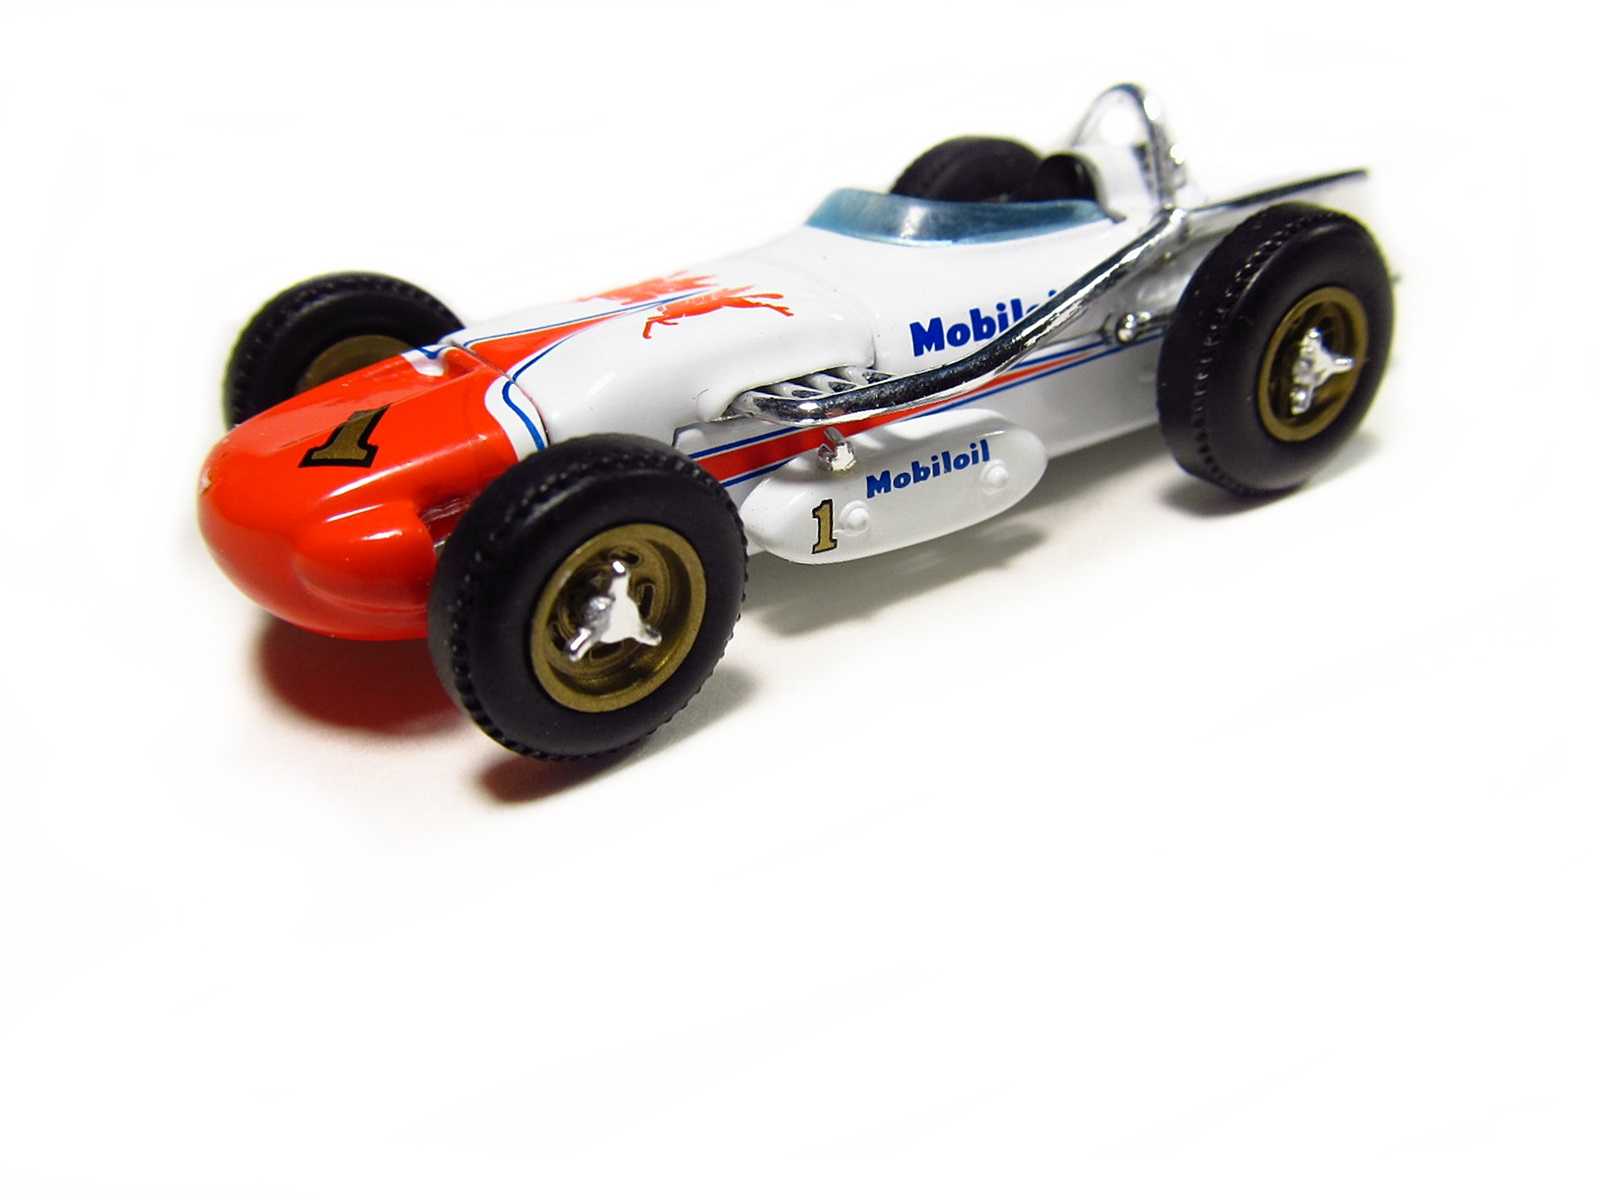 Mobil Libre Hot Wheels Hwc Exclusive Mobil Oil 4 Car Series